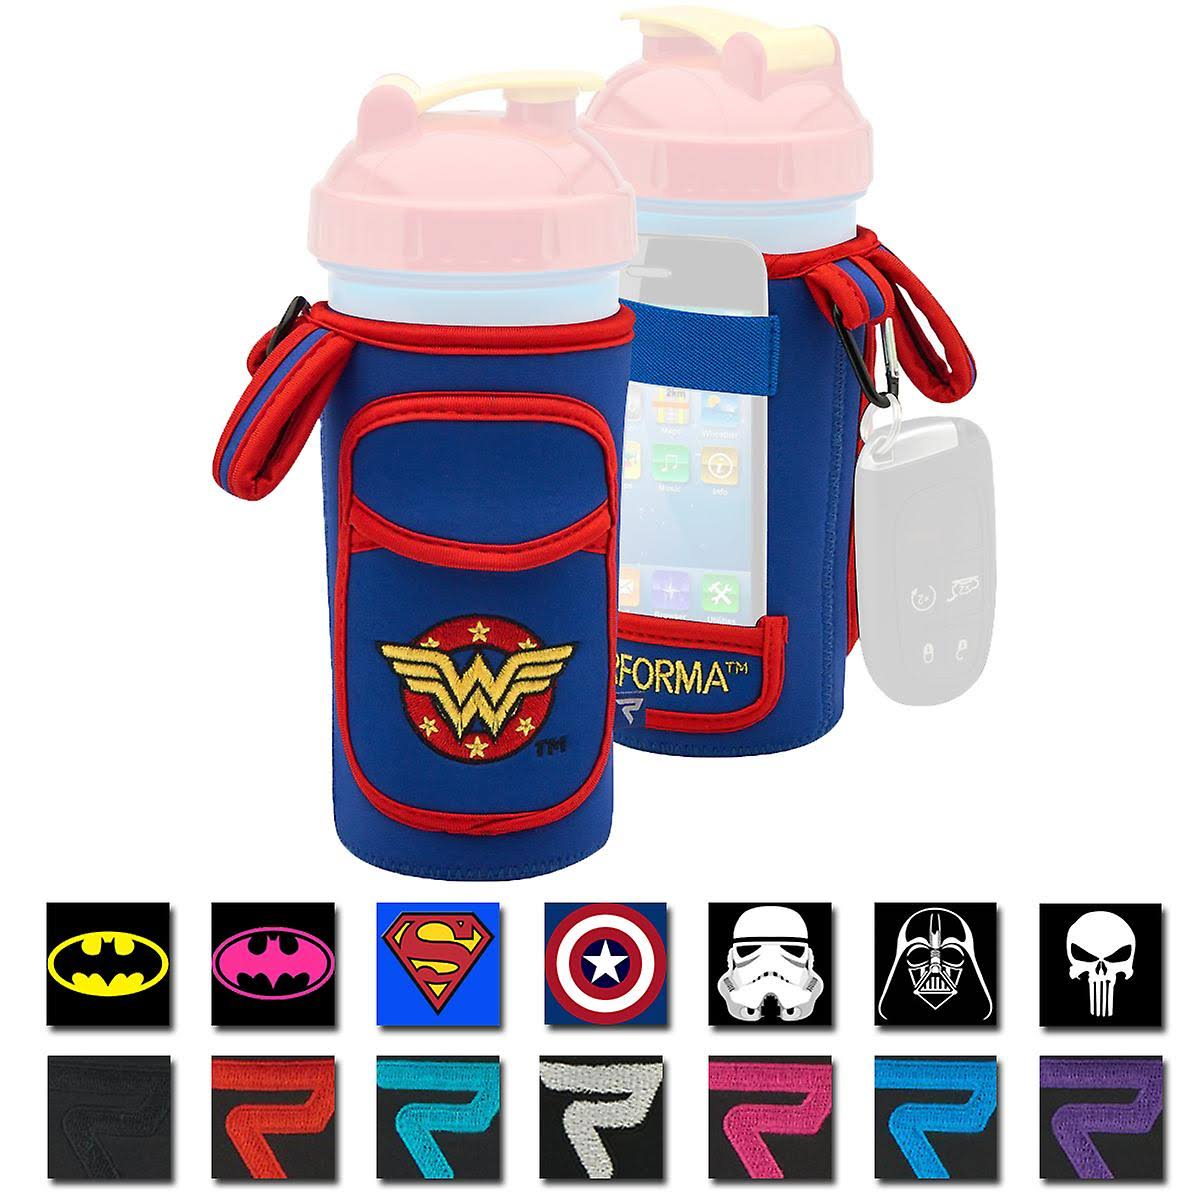 Performa FitGO Insulated Water-Resistant Shaker Cup Holder Sleeve Wonder Woman One Size